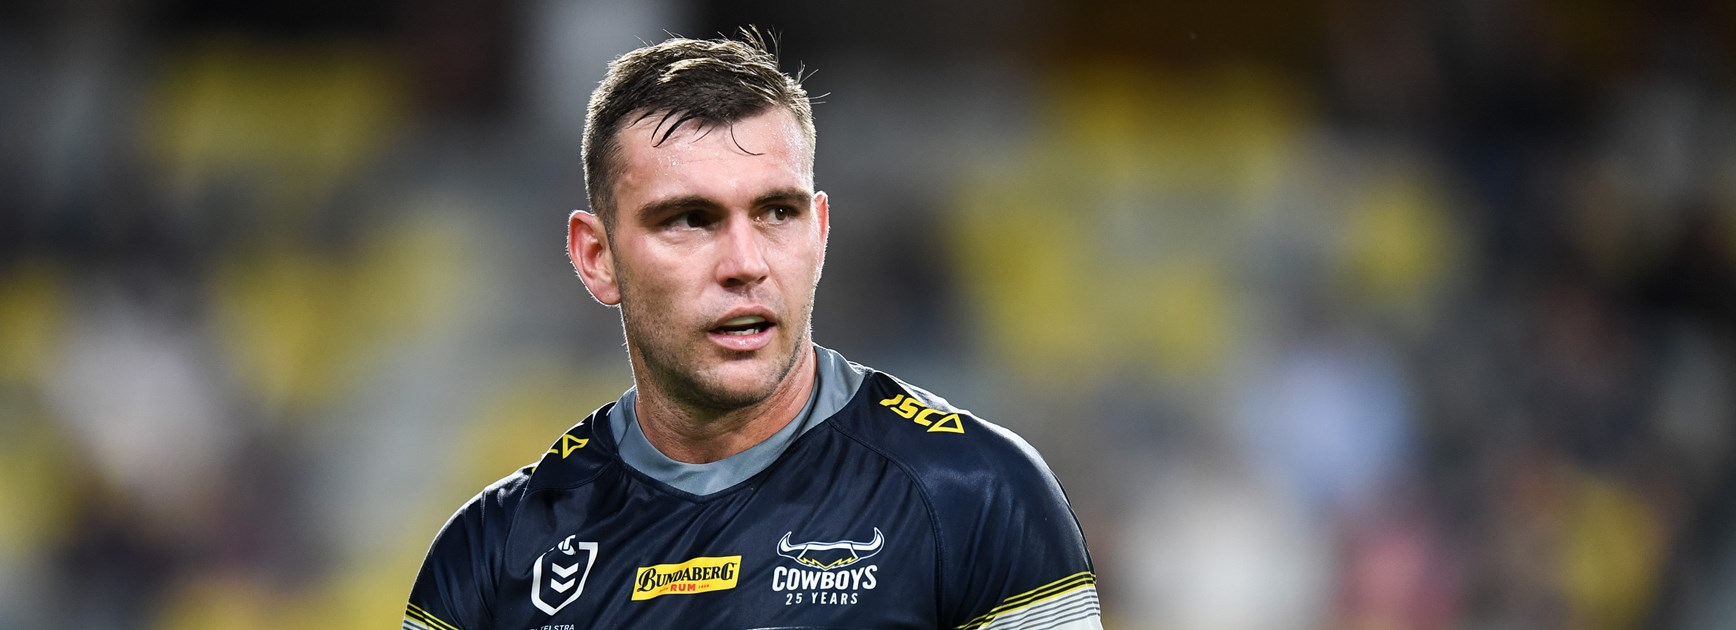 Local boy made good: Feldt recognised for helping Townsville community